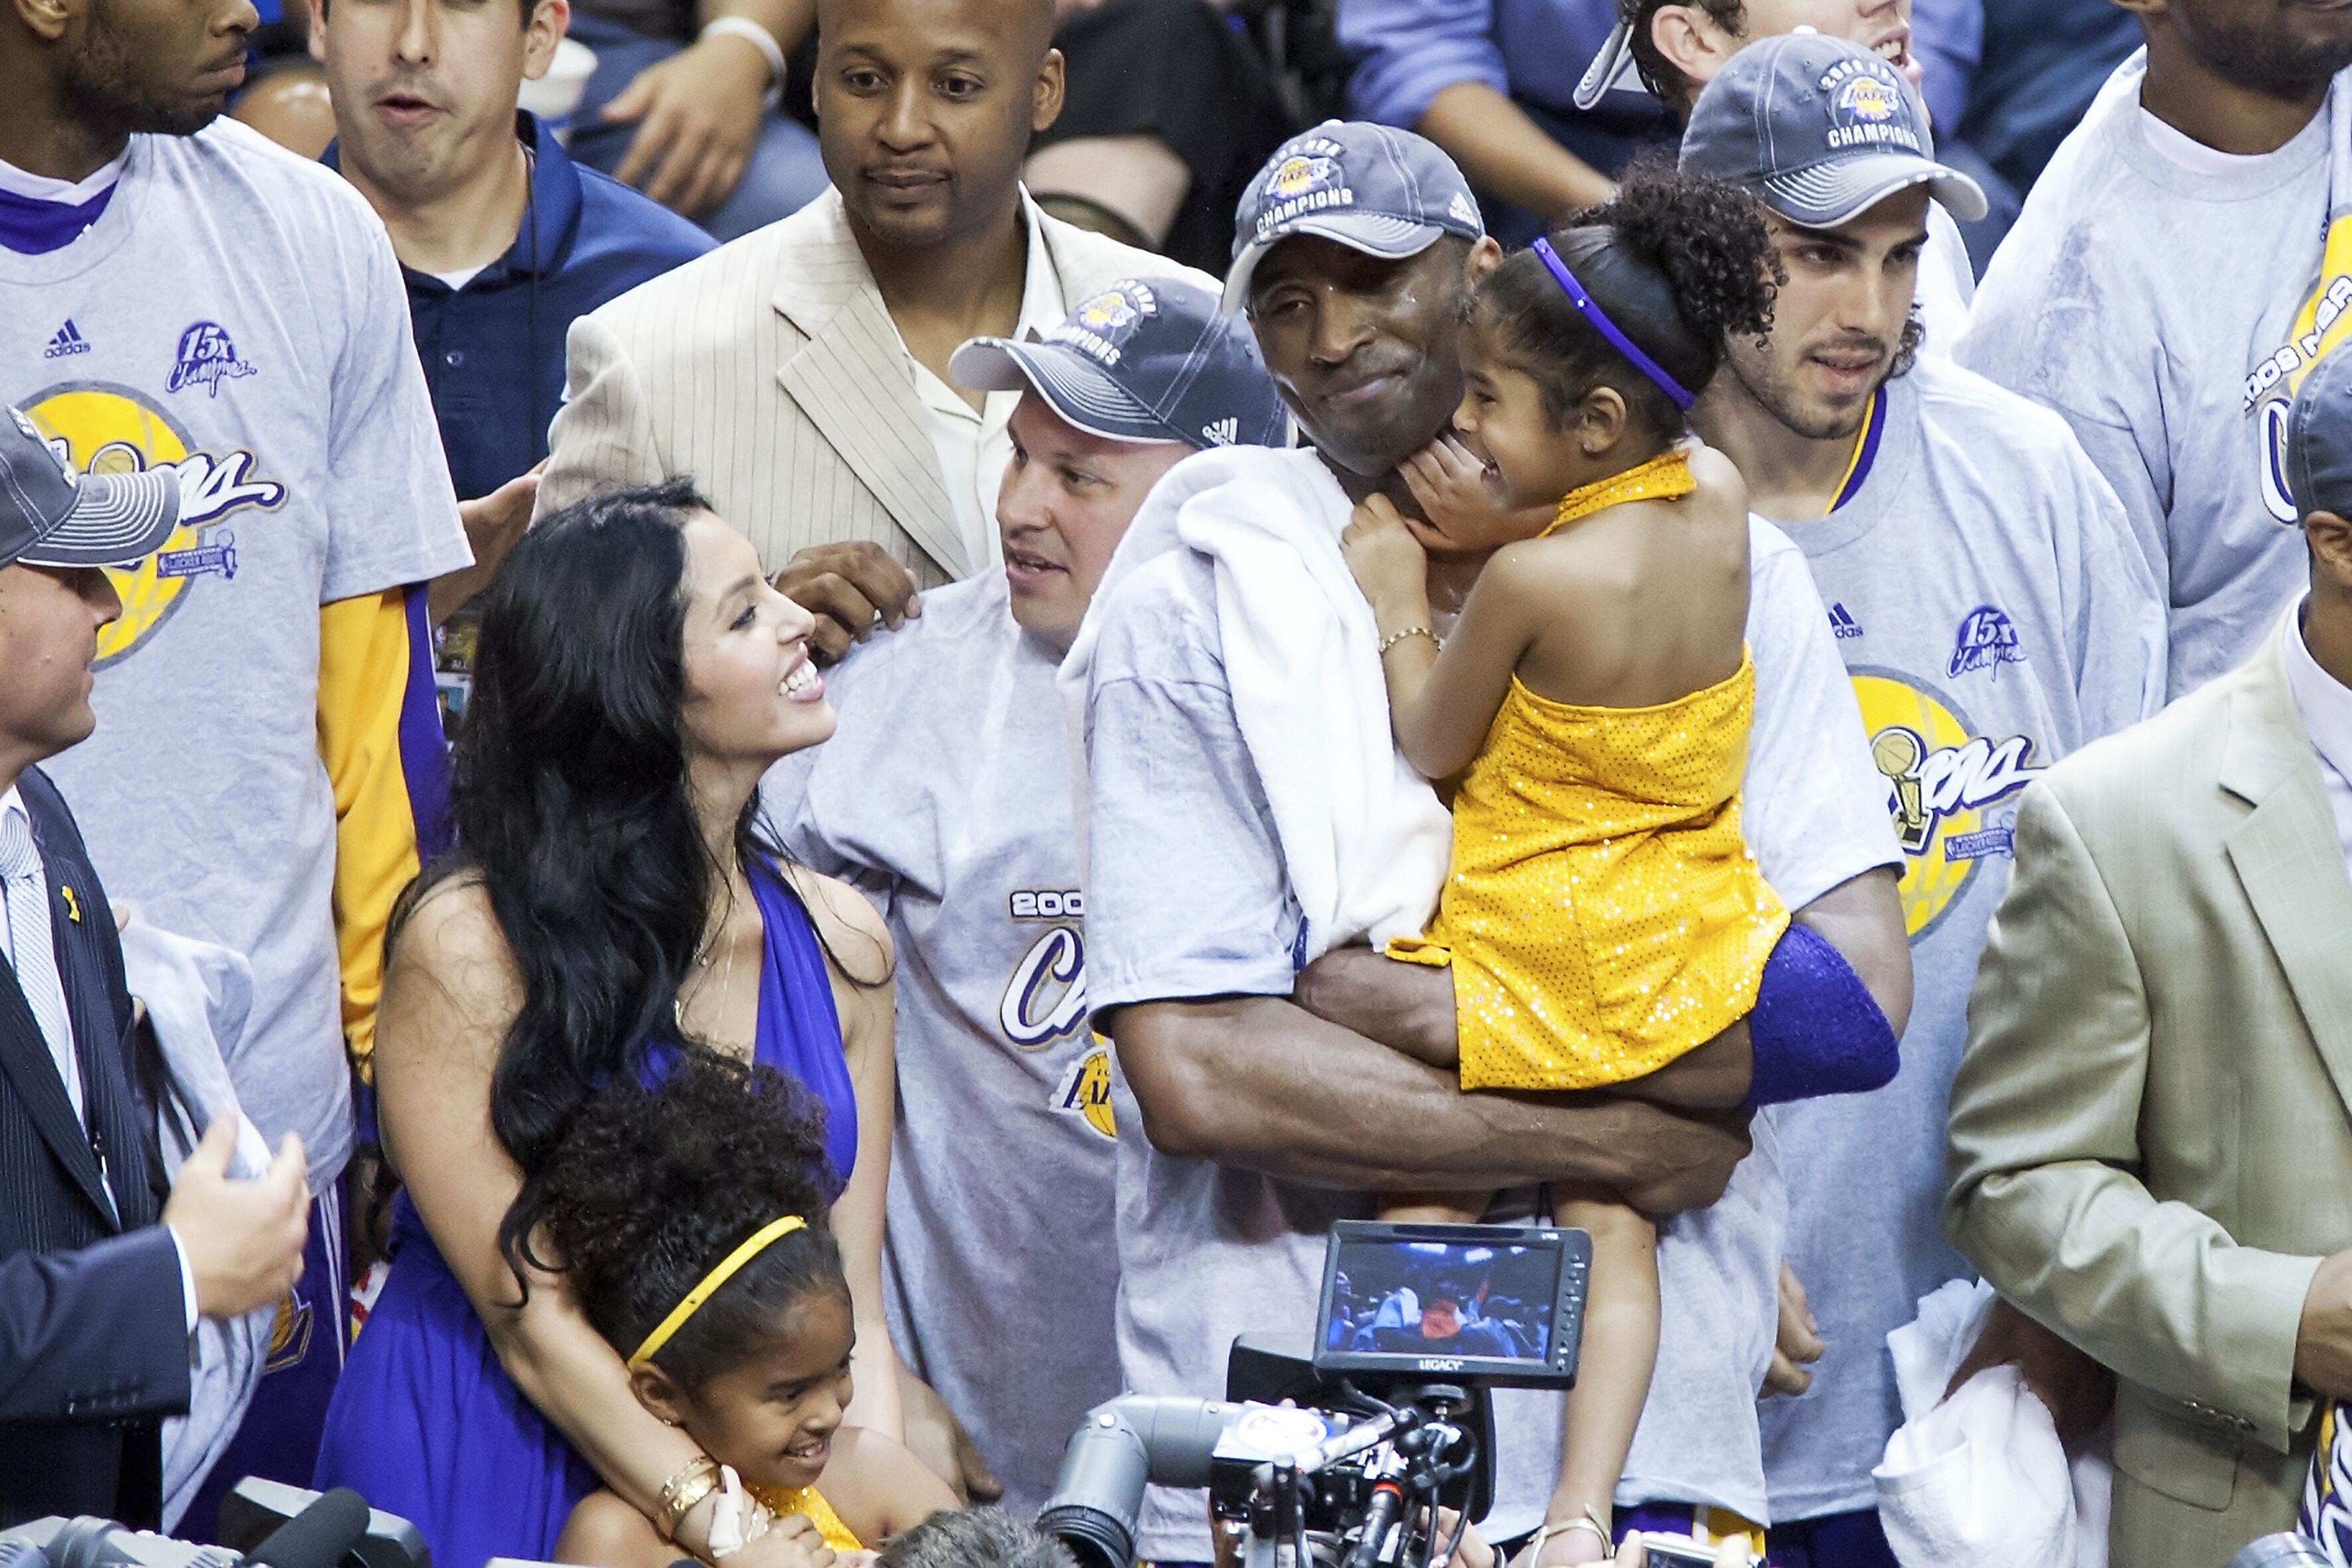 Kobe and Vanessa Bryant celebrate an LA Lakers championship with their daughters Natalia and Gianna | Source: Getty Images/GlobalImagesUkraine